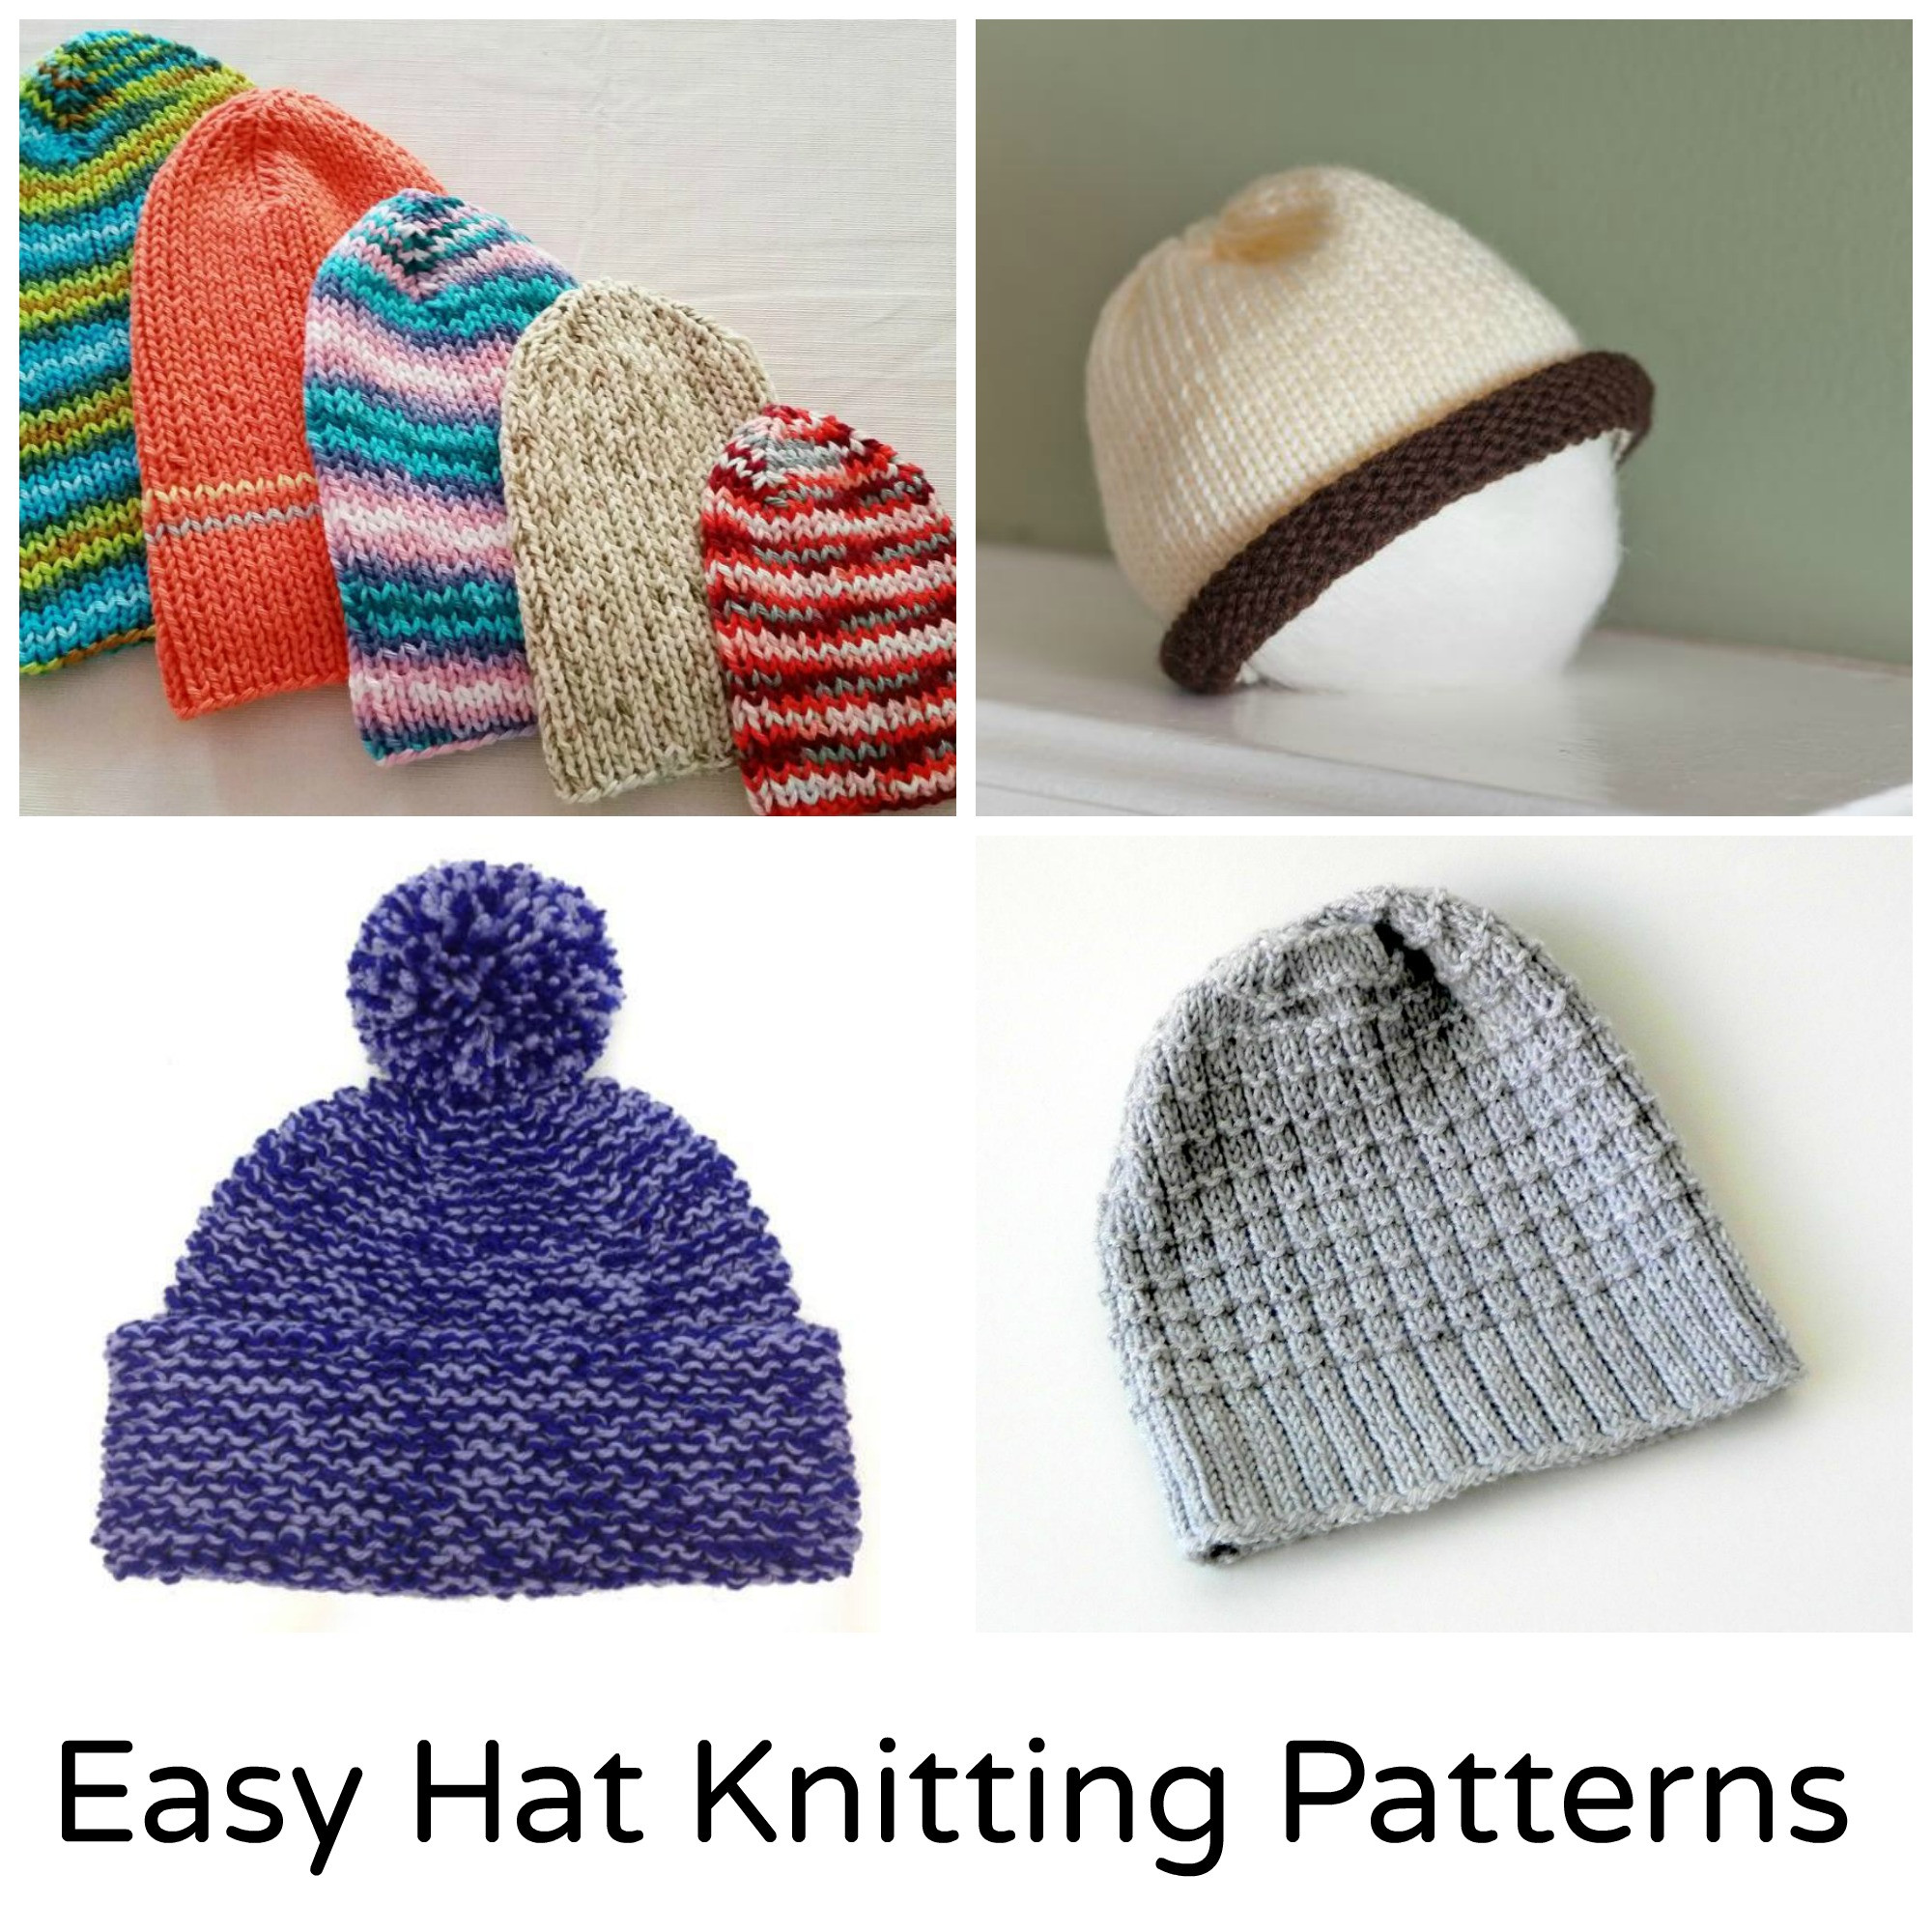 Elegant 12 Quick and Easy Knit Hat Patterns Easy Knitting Projects Of Awesome 42 Pics Easy Knitting Projects